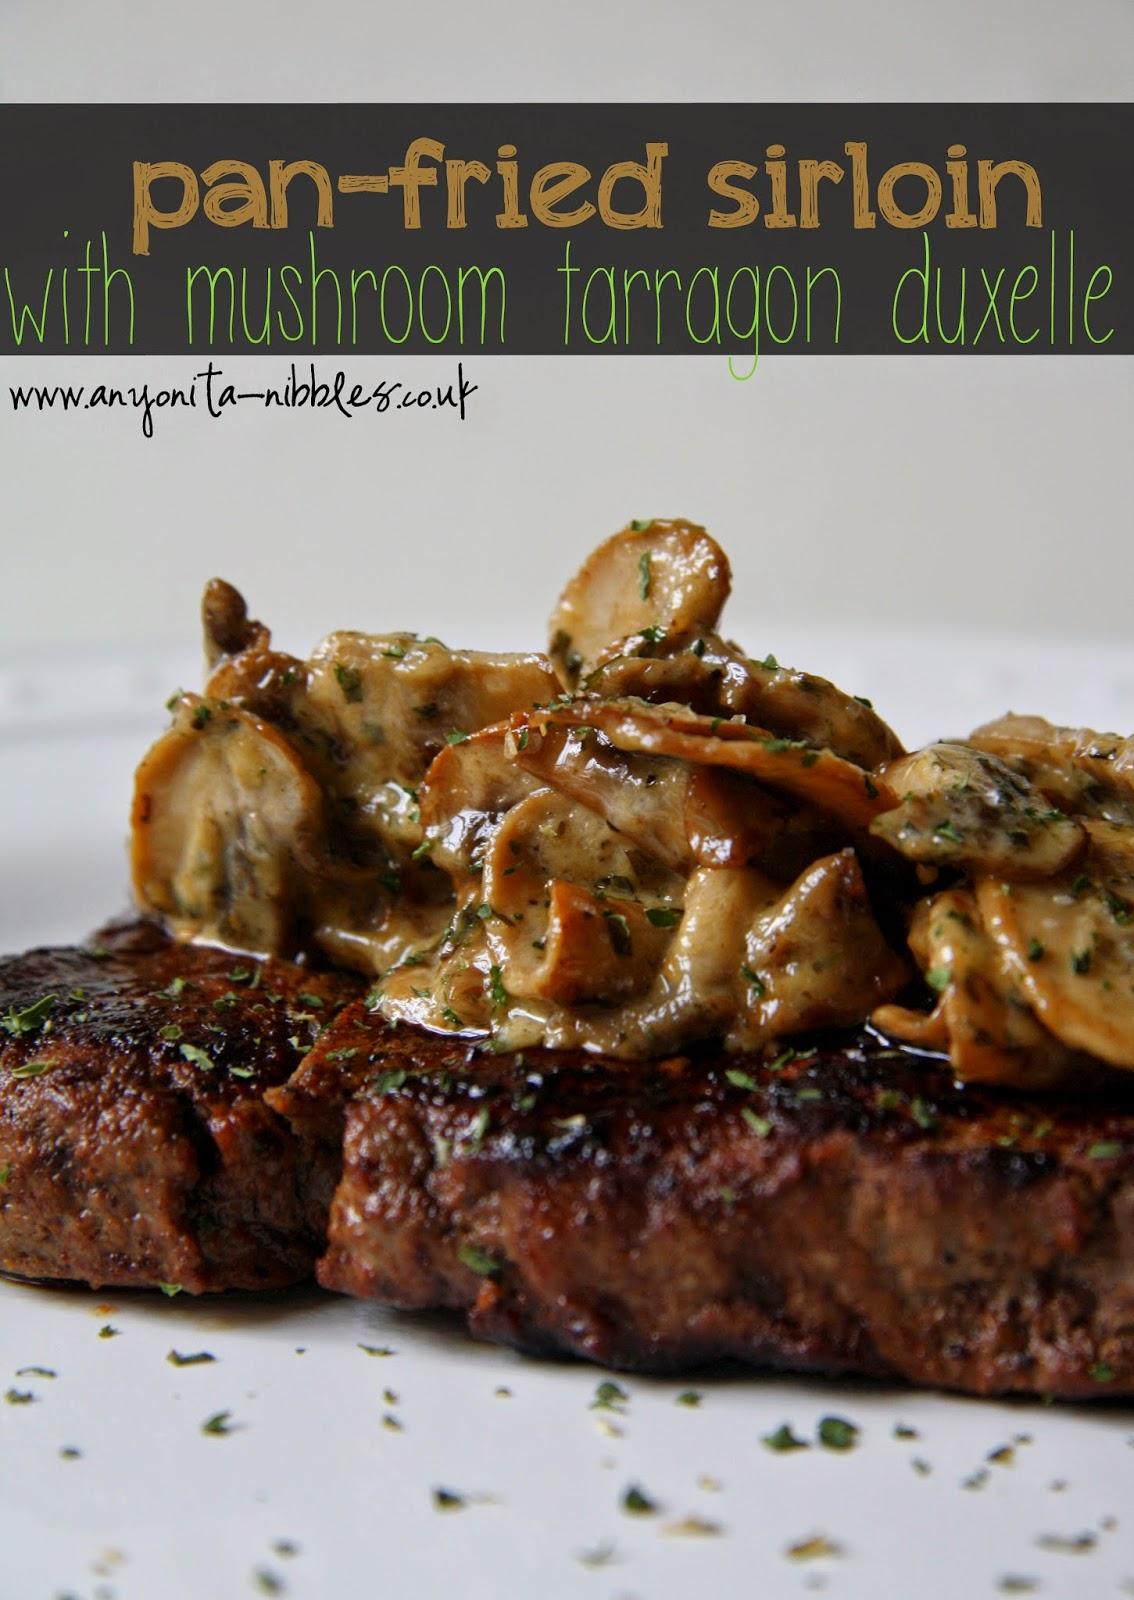 #glutenfree pan-fried #sirloin with #mushroom #tarragon #duxelle from www.anyonita-nibbles.co.uk